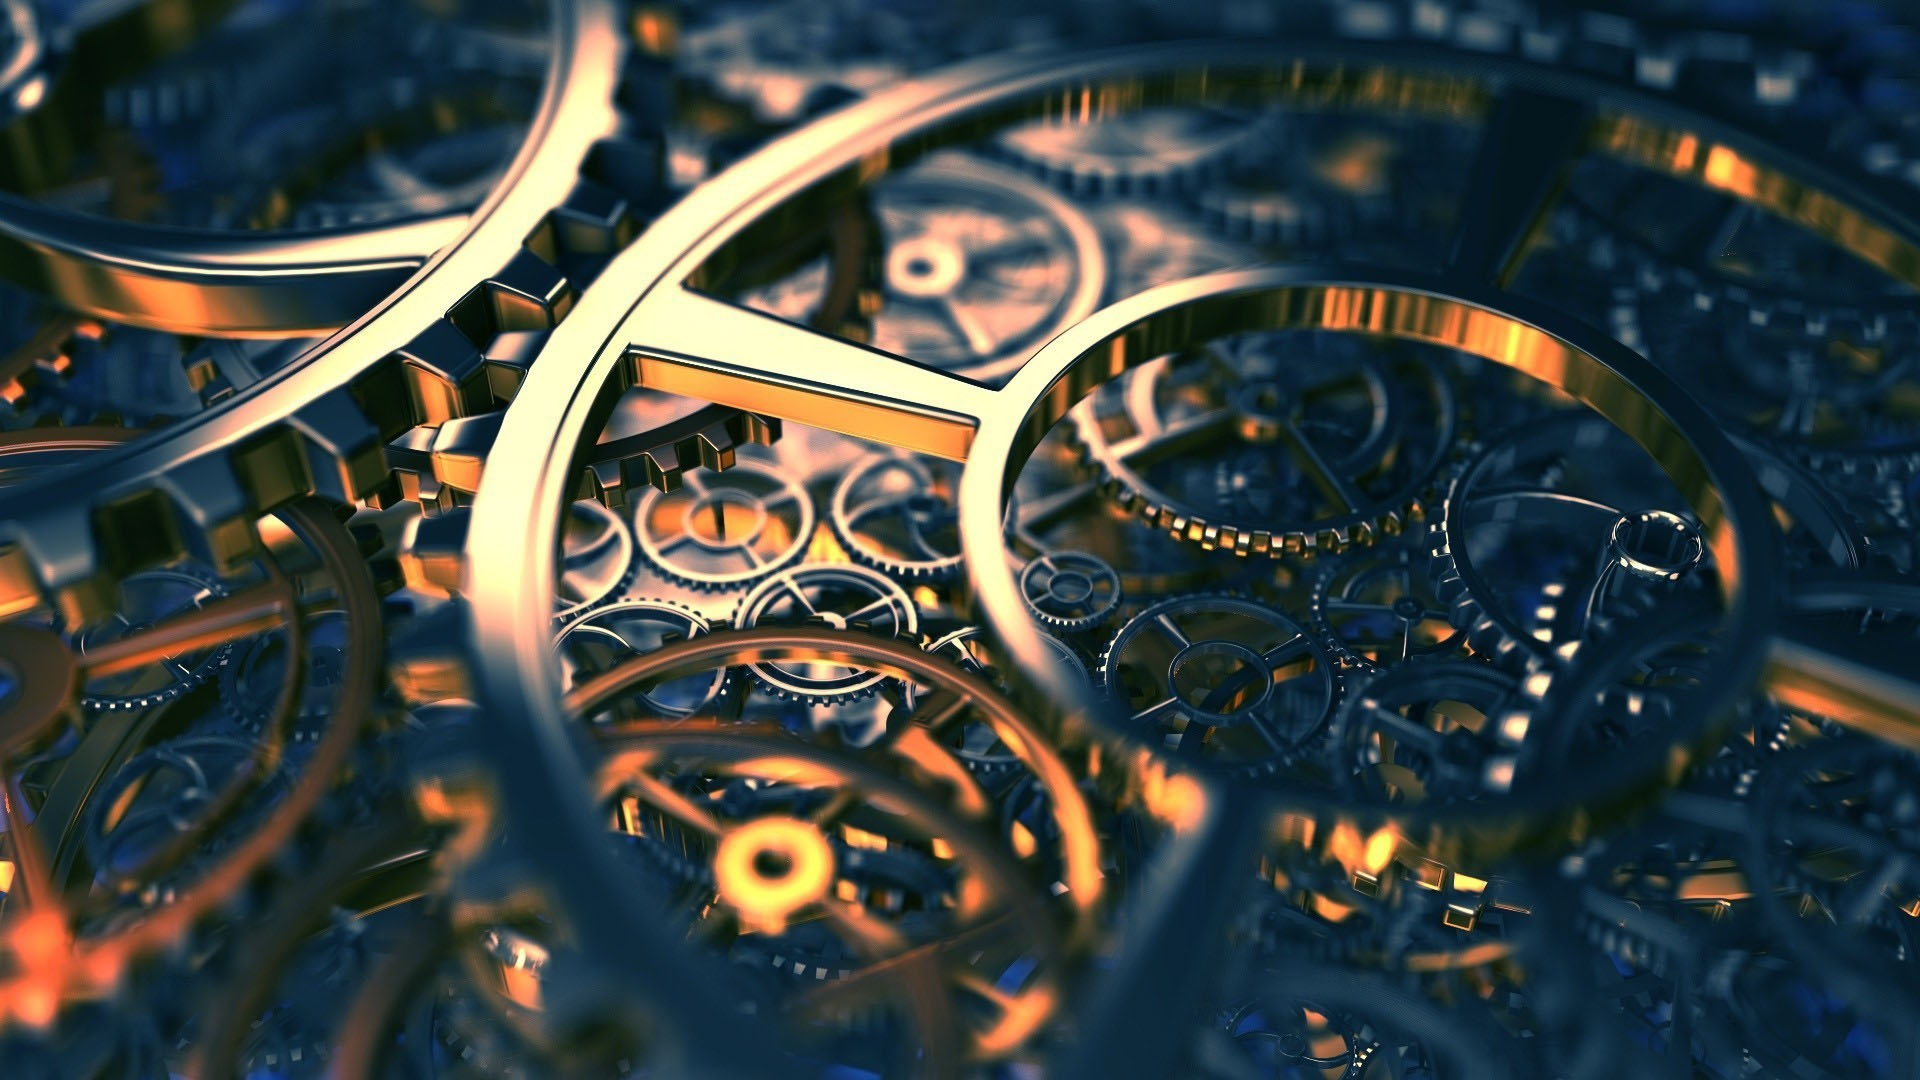 gears Wallpaper and Background Image | 1366x768 | ID:487138